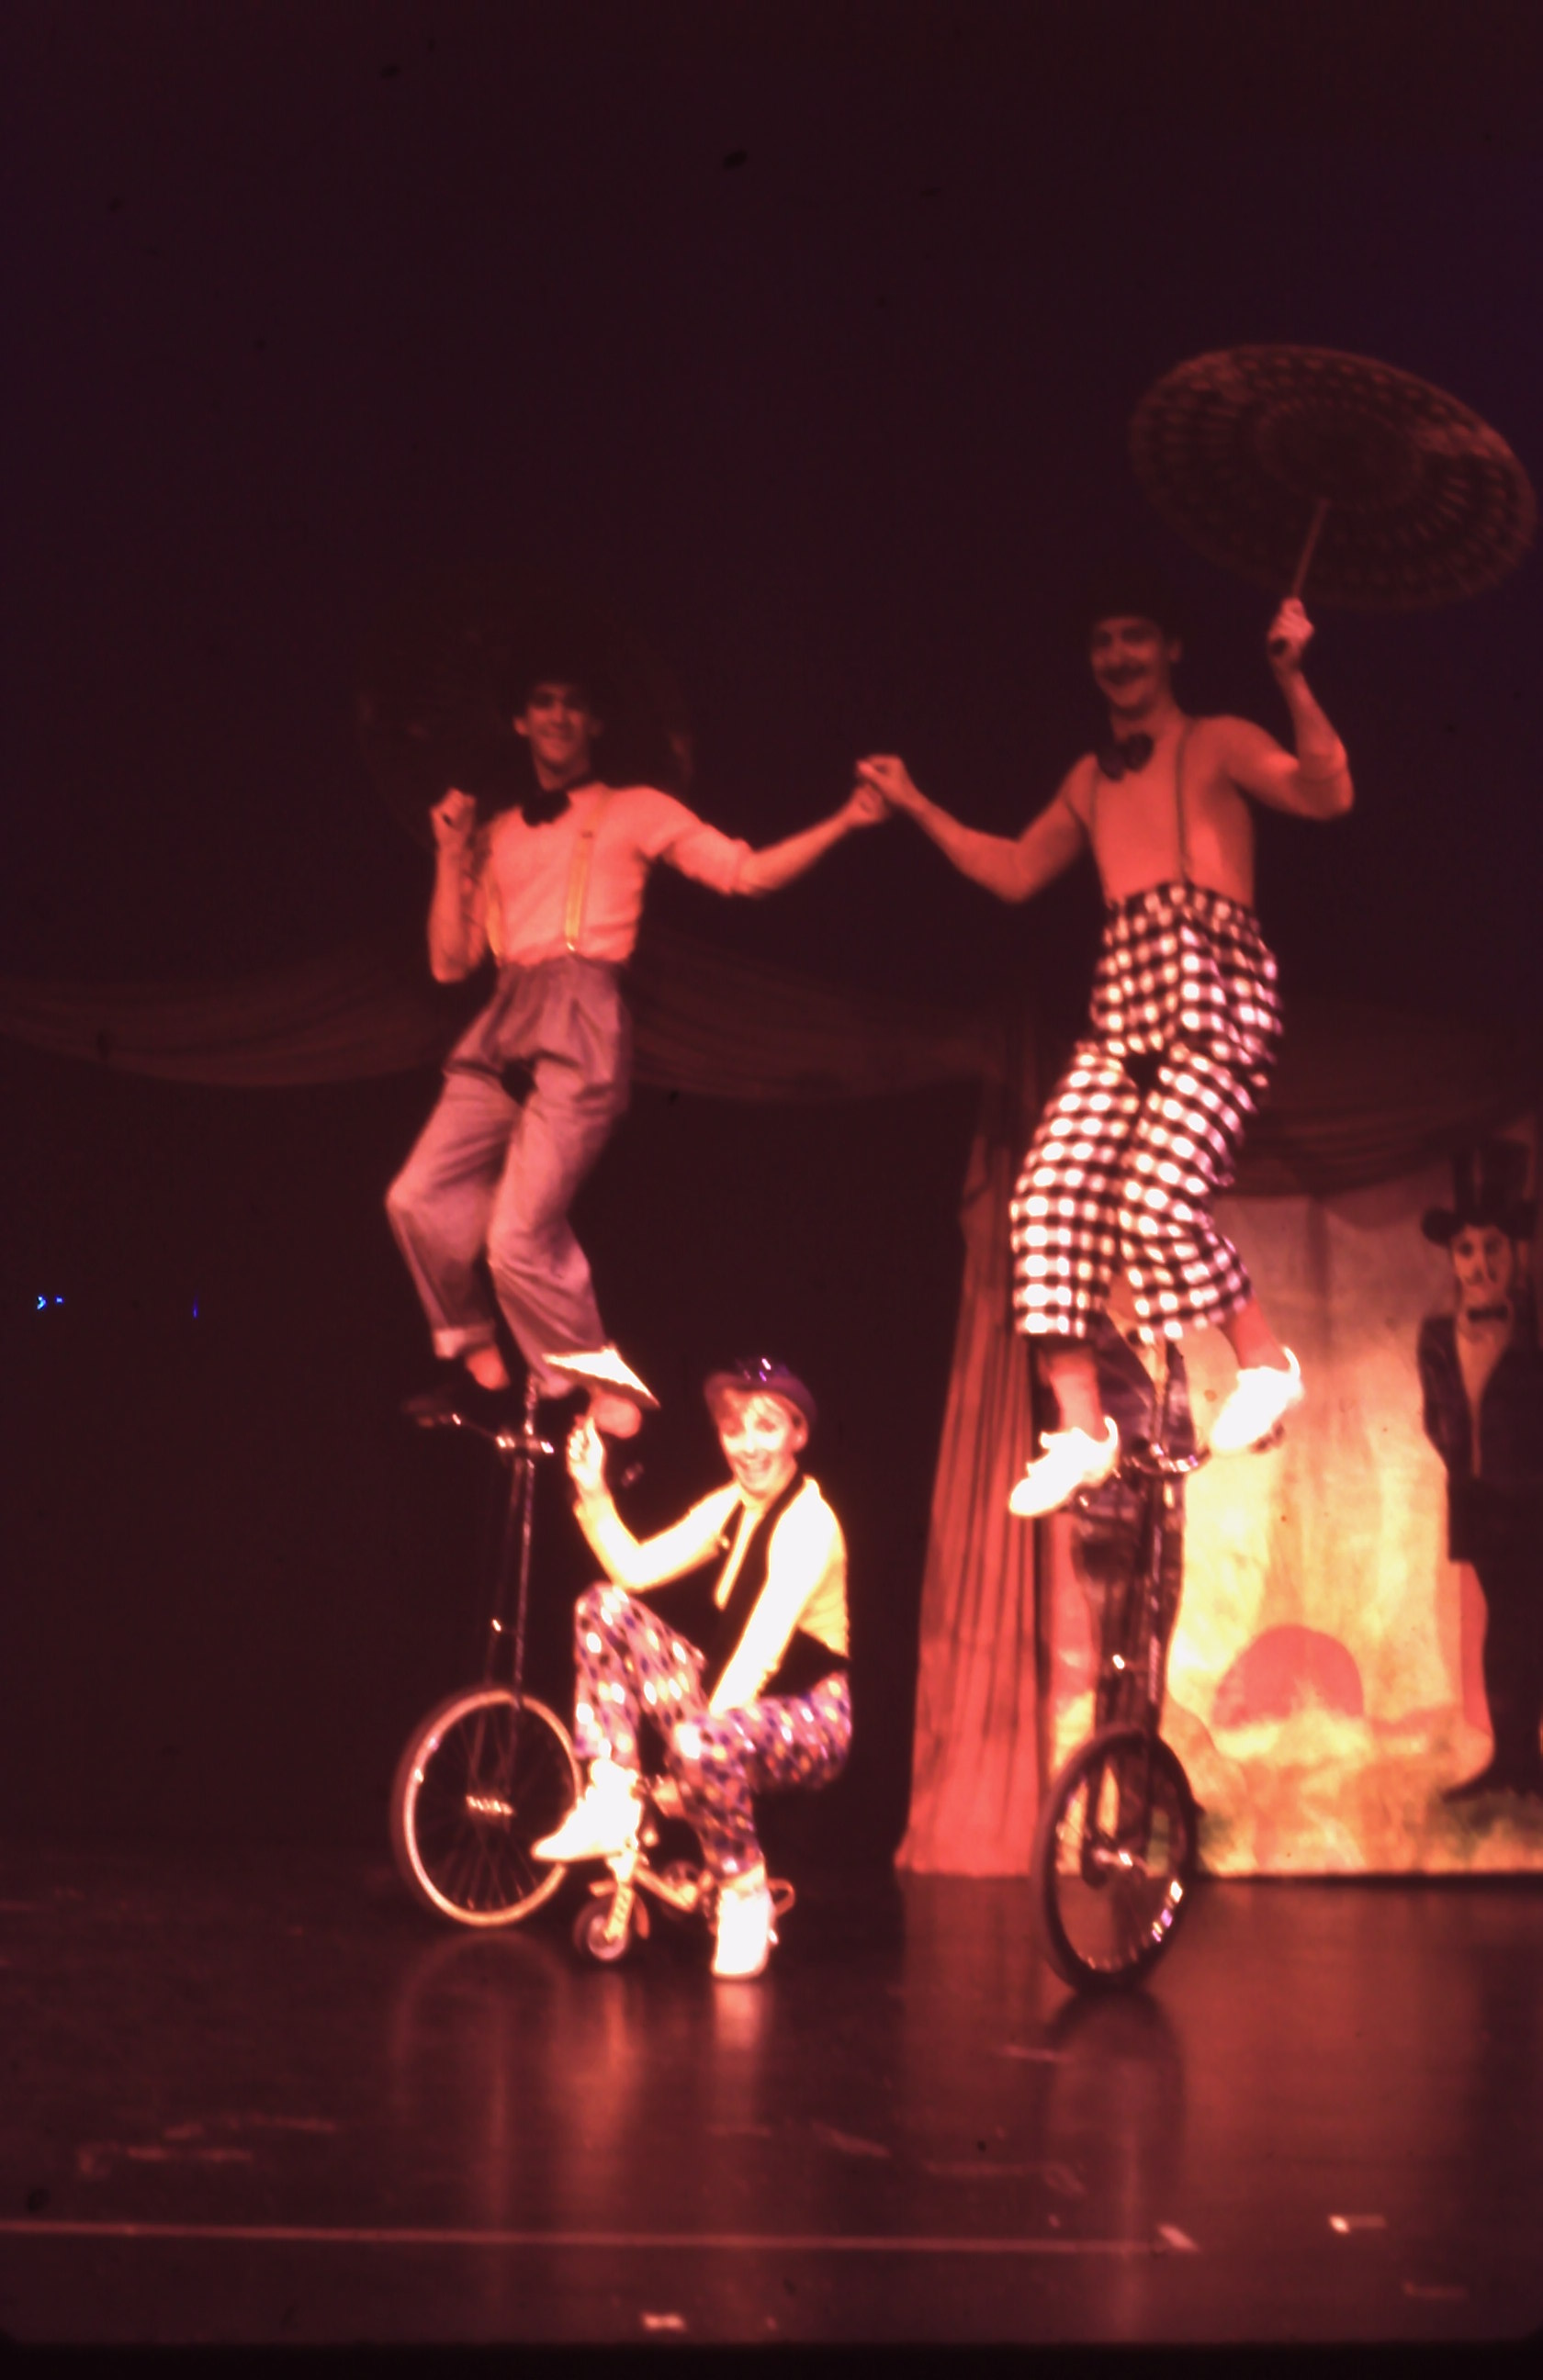 Unicycles since 1985